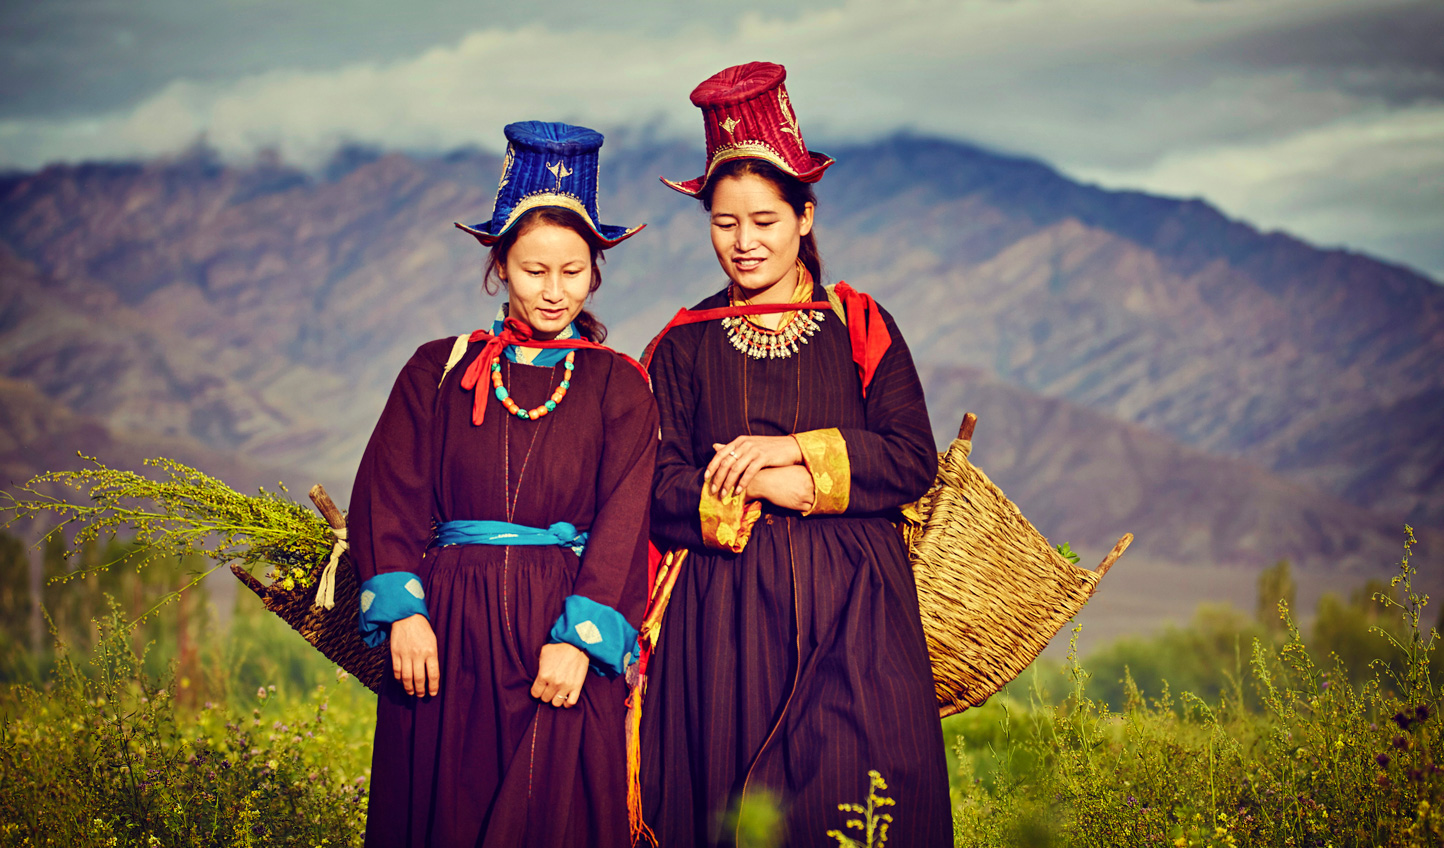 Meet the local people of Ladakh